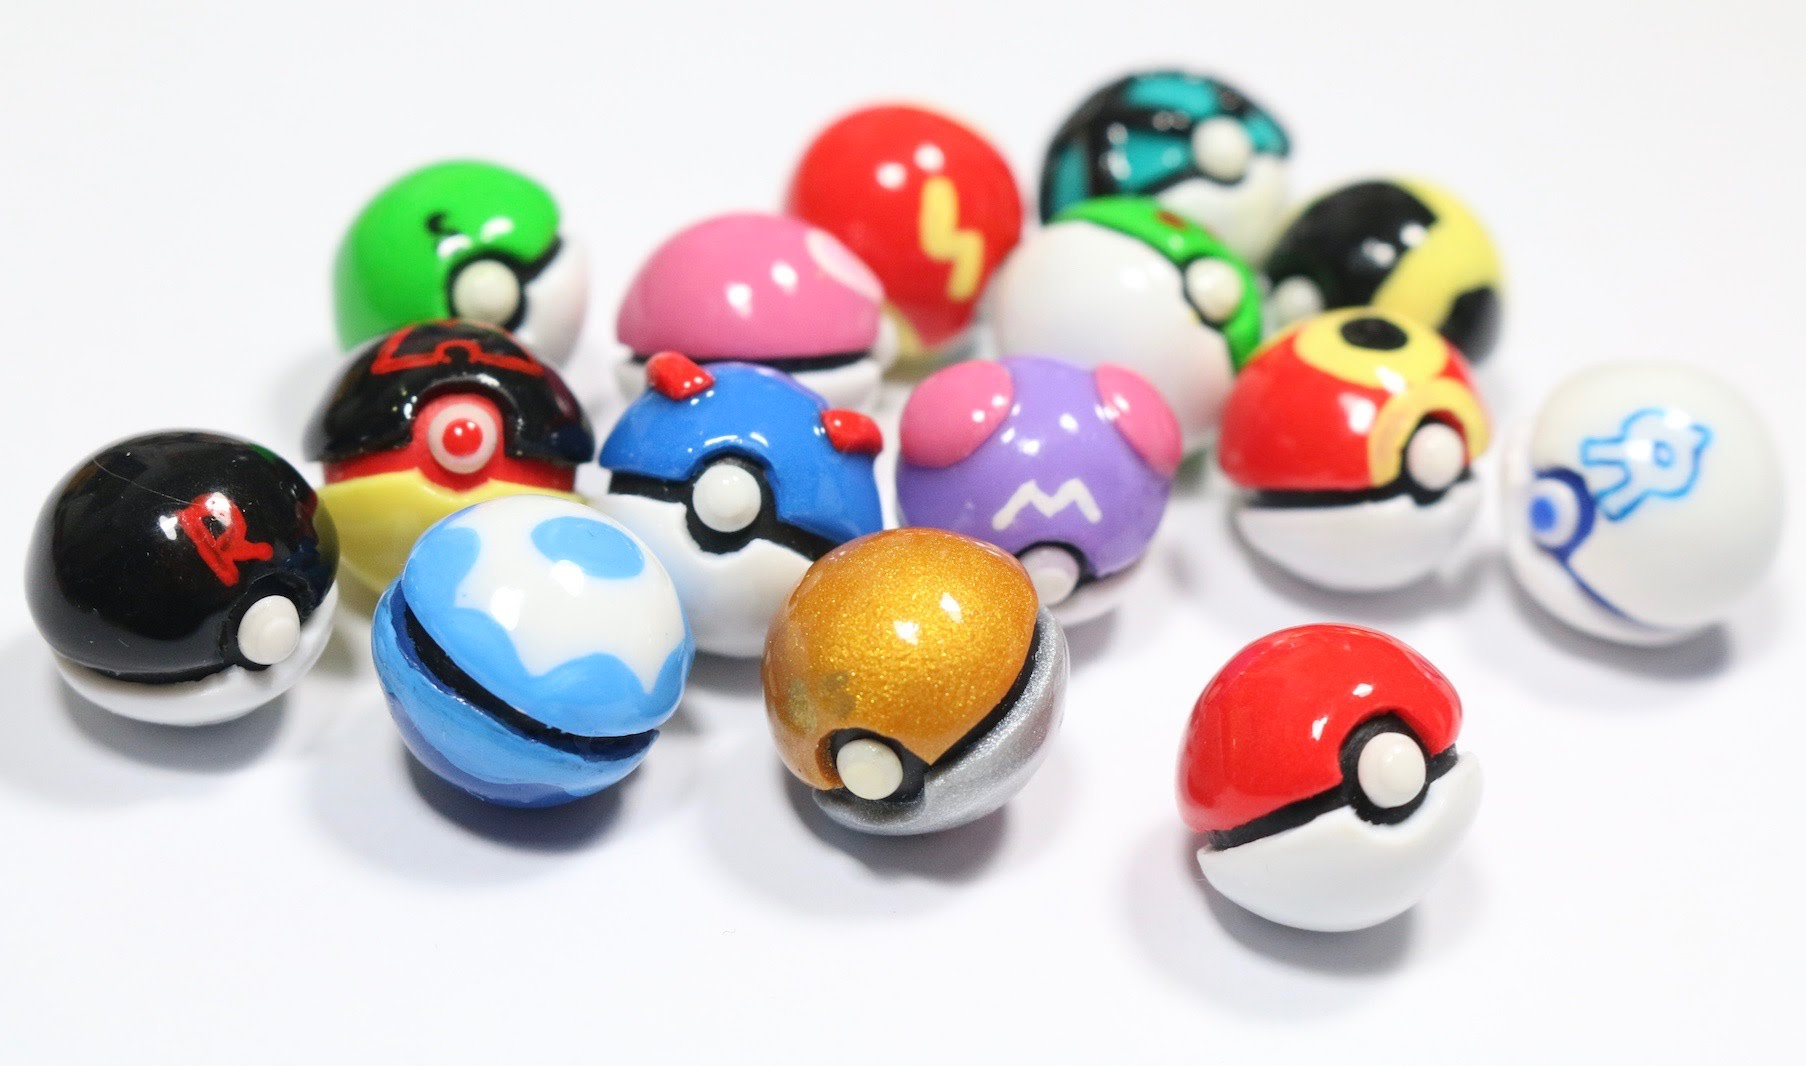 Drawn pokeball marble YouTube Pokeball 15 Miniature 15